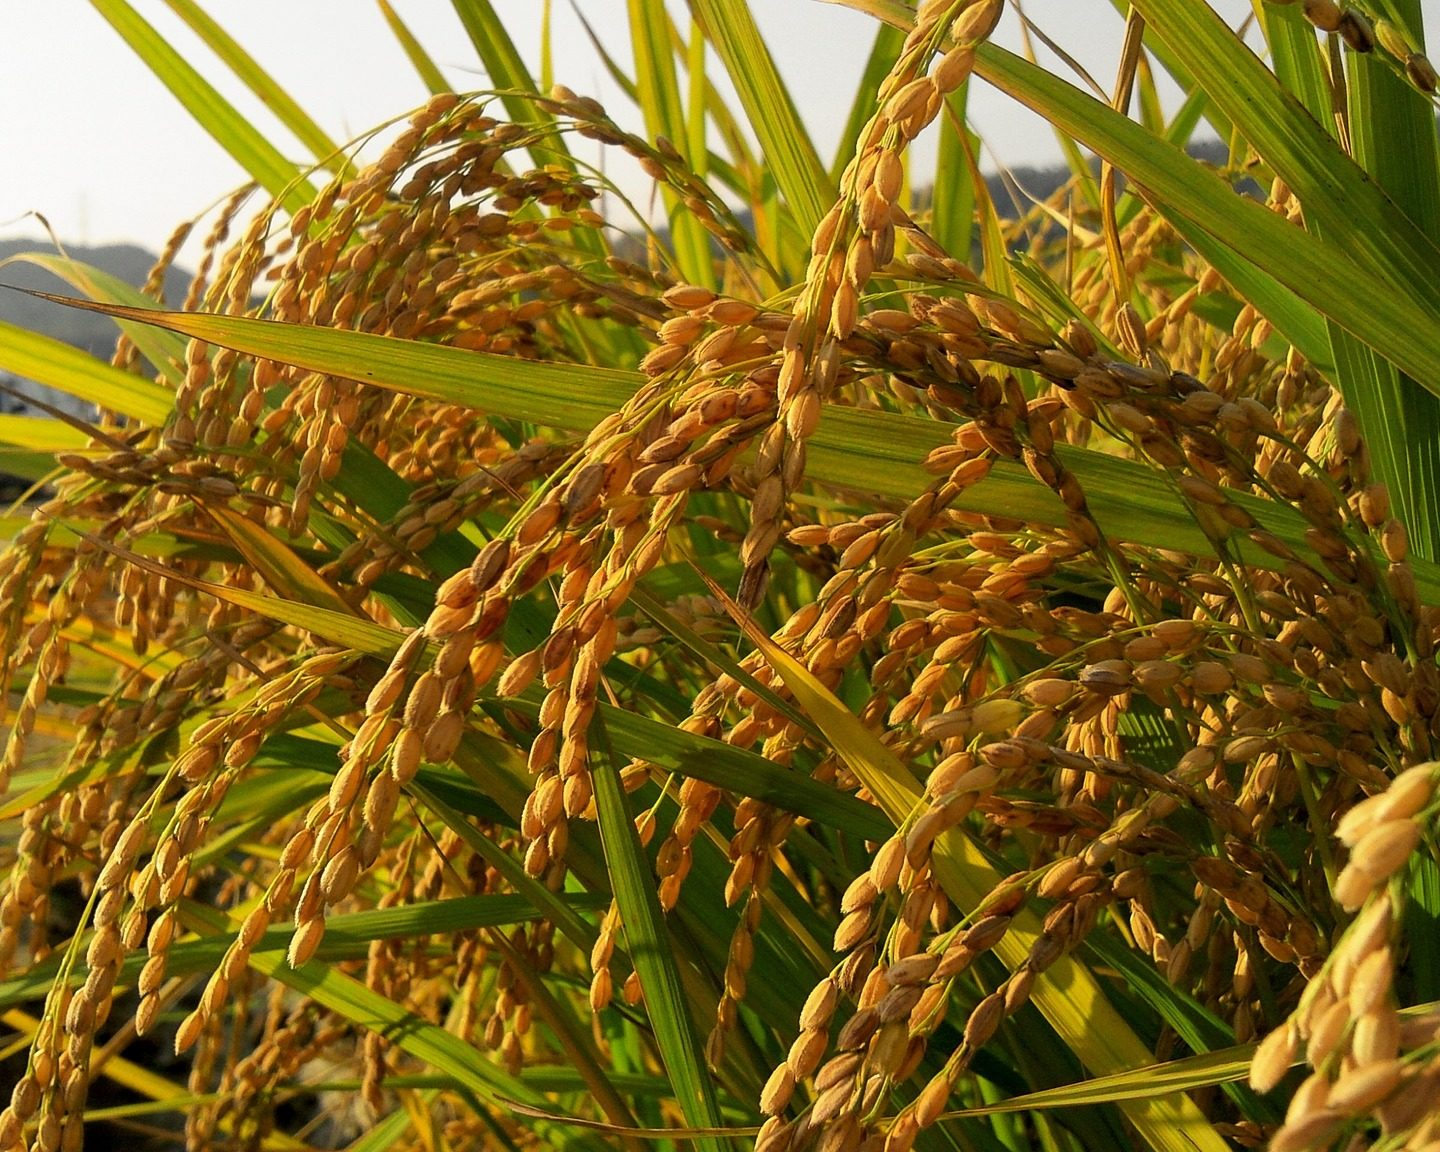 Rice plants that grow as clones from seed